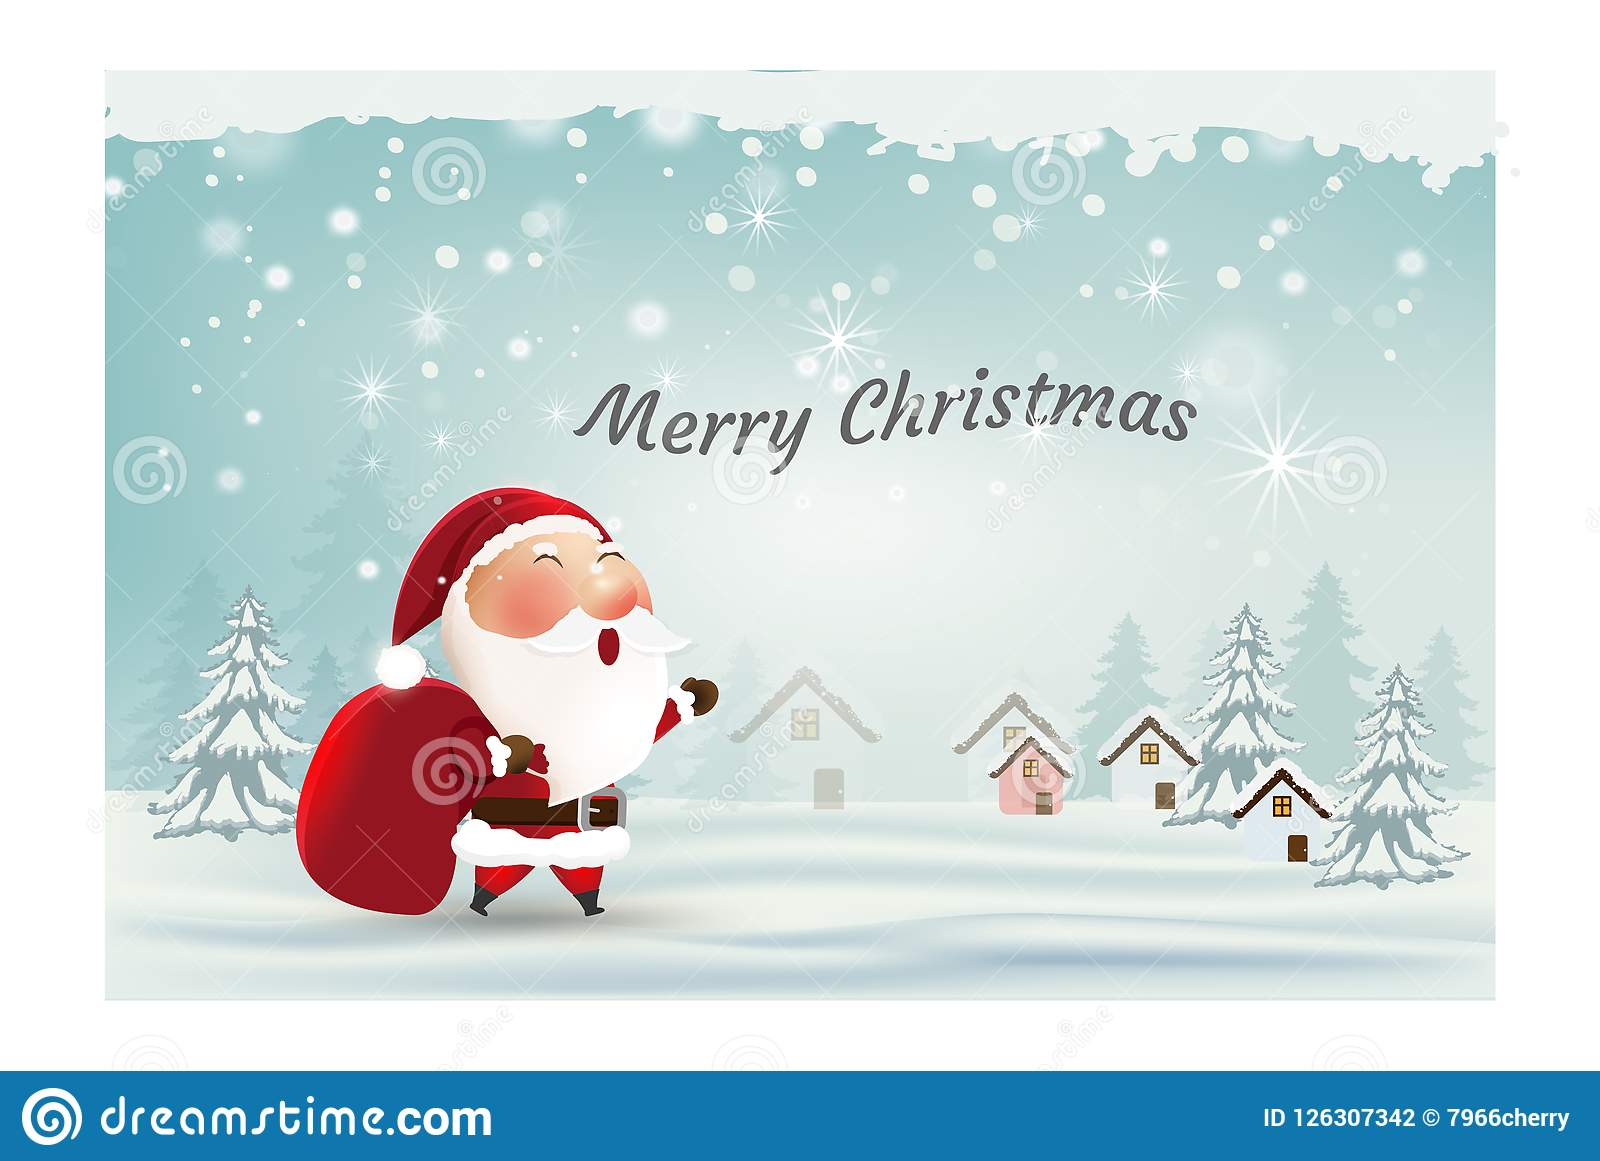 merry christmas and happy new year cardsanta claus snow scene happy greeting